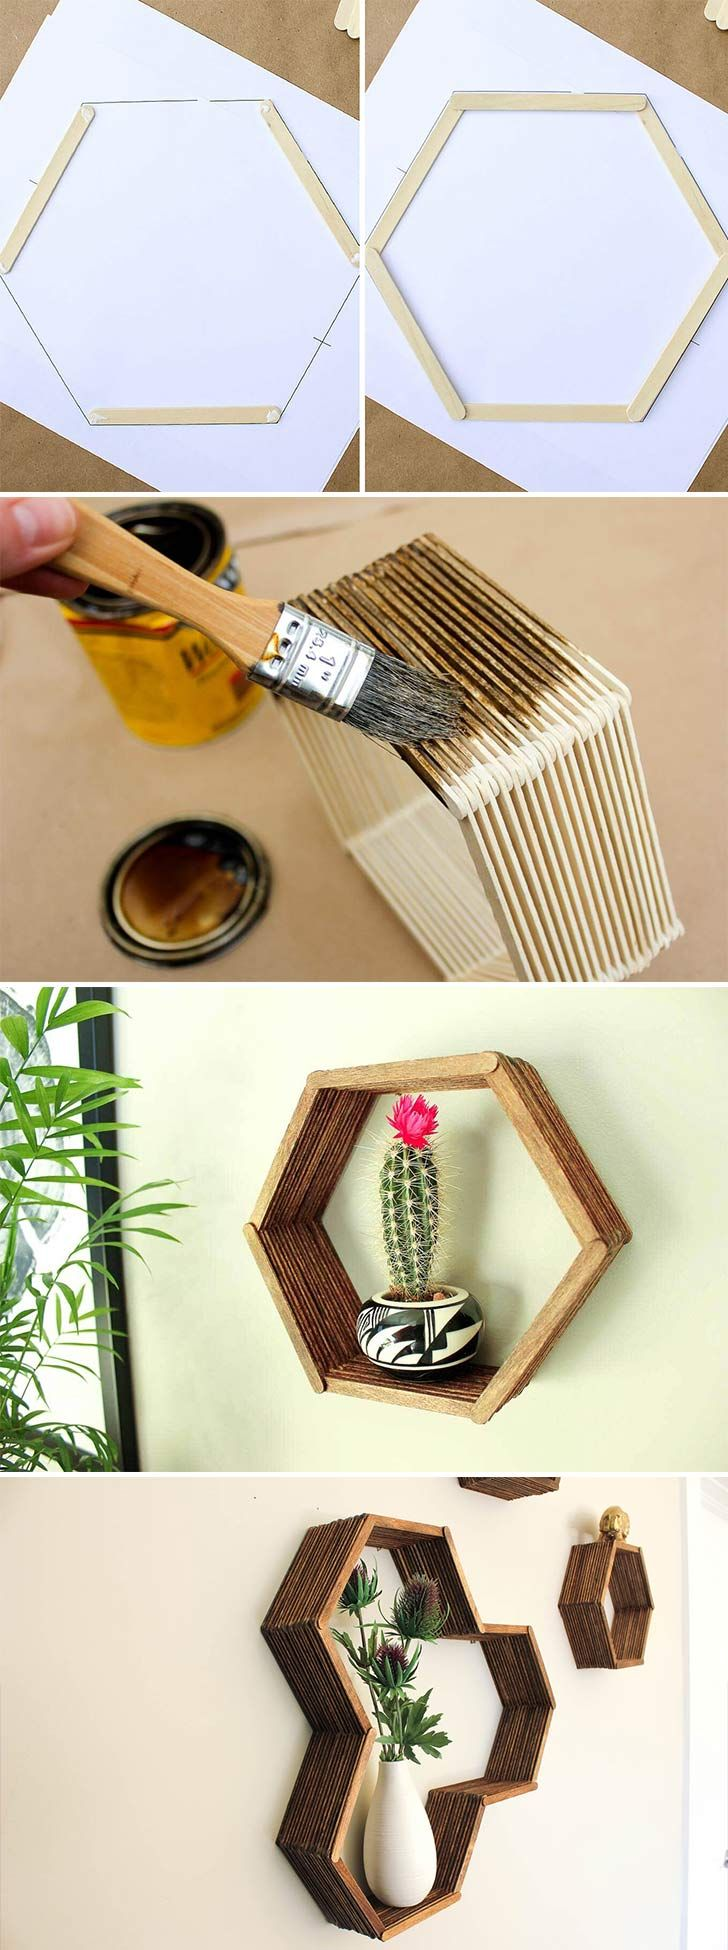 best 20+ diy home decor ideas on pinterest | diy house decor, diy